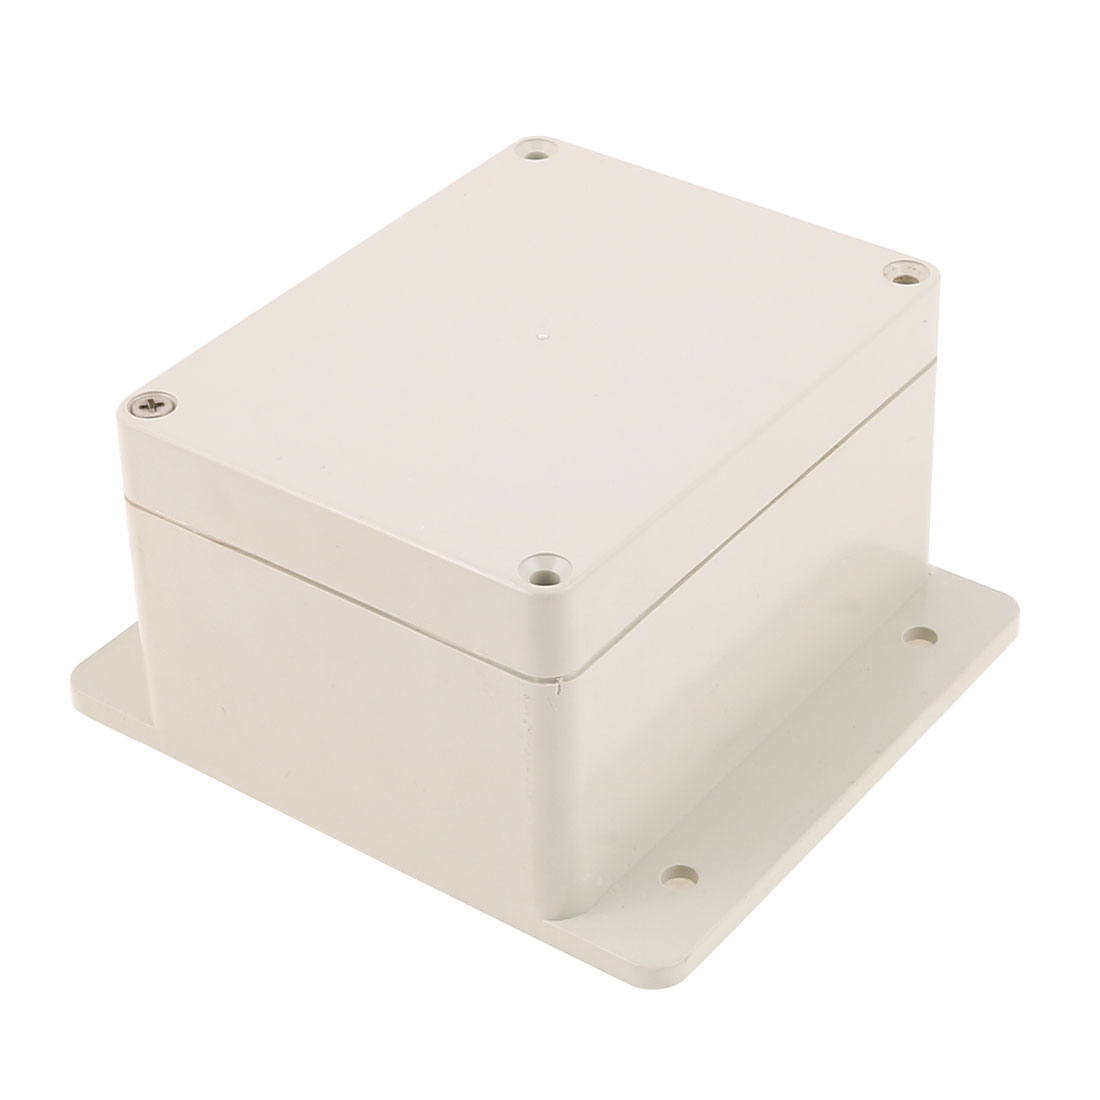 Plastic Dustproof IP65 Sealed Electronic DIY Junction Box Case 115 x 90 x 68mm